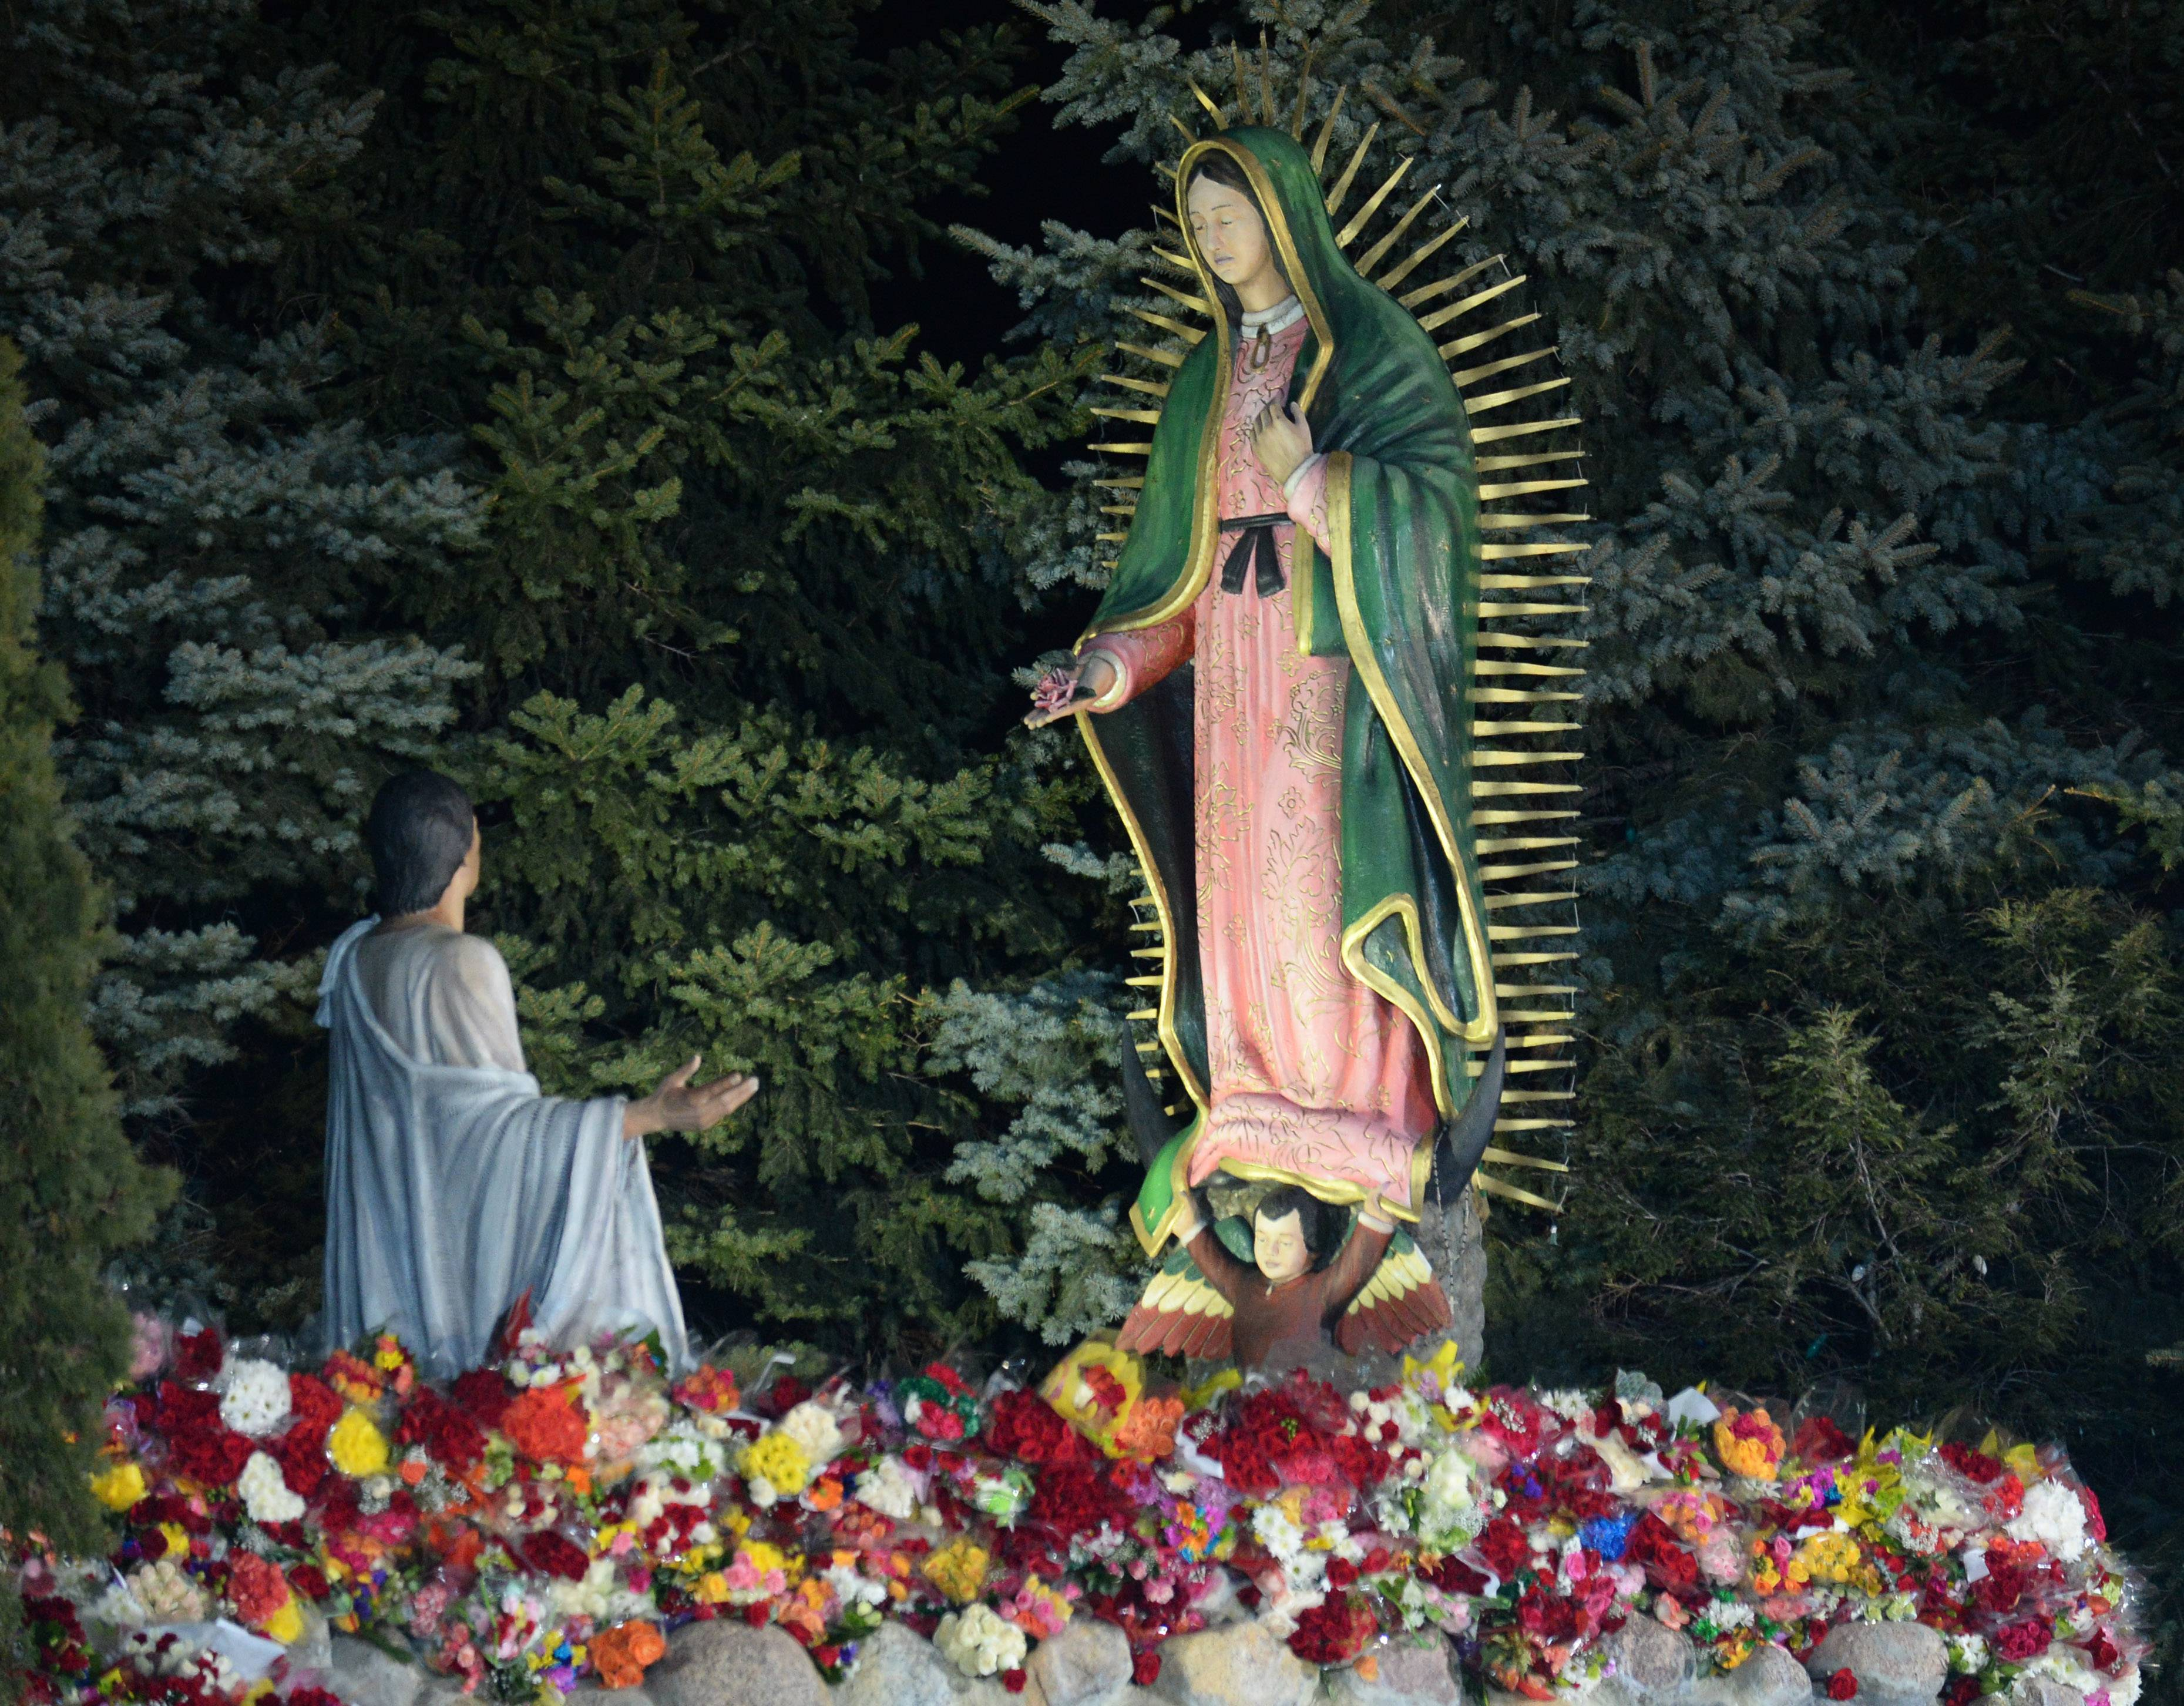 Thousands of flowers lay at the base of the replica statues of Our Lady of Guadalupe and Saint Juan Diego, which form the centerpiece of the shrine in Des Plaines.